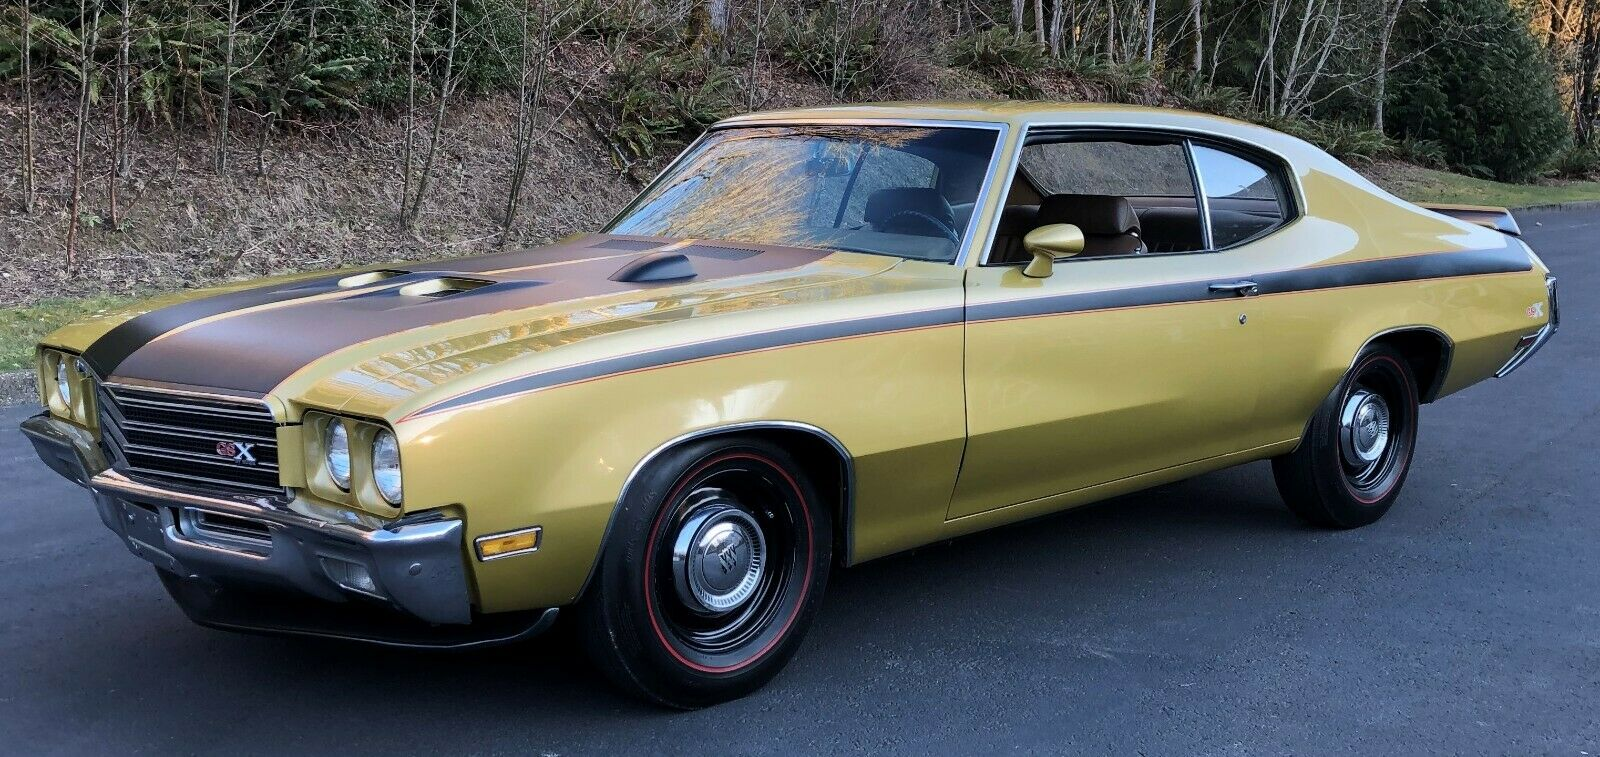 1971 Buick GSX  1971 Buick GSX 2 door sport coupe, Time Capsule car 1 of 124 built by GM in 1971